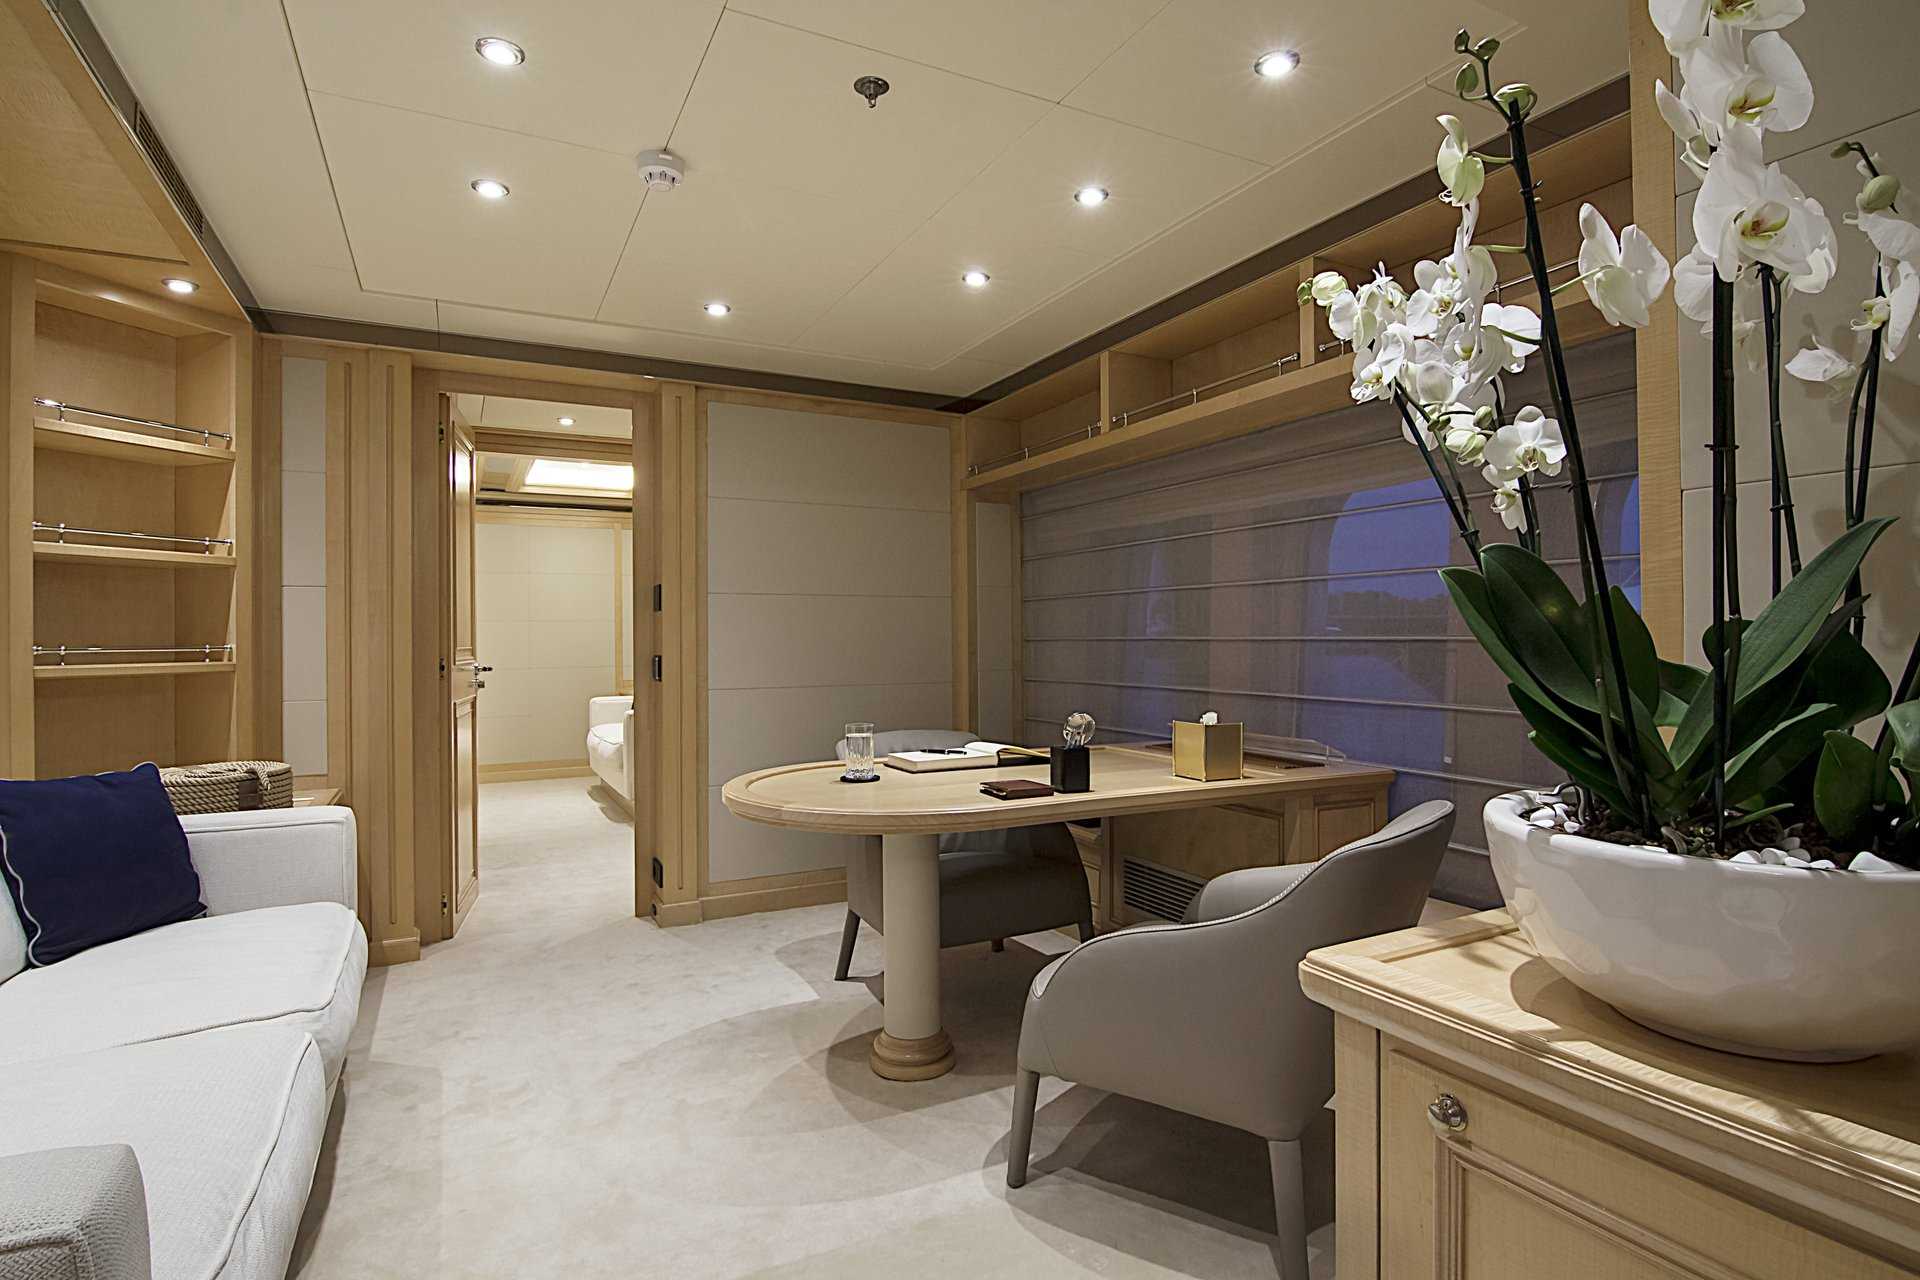 m/y invader yacht for charter study room